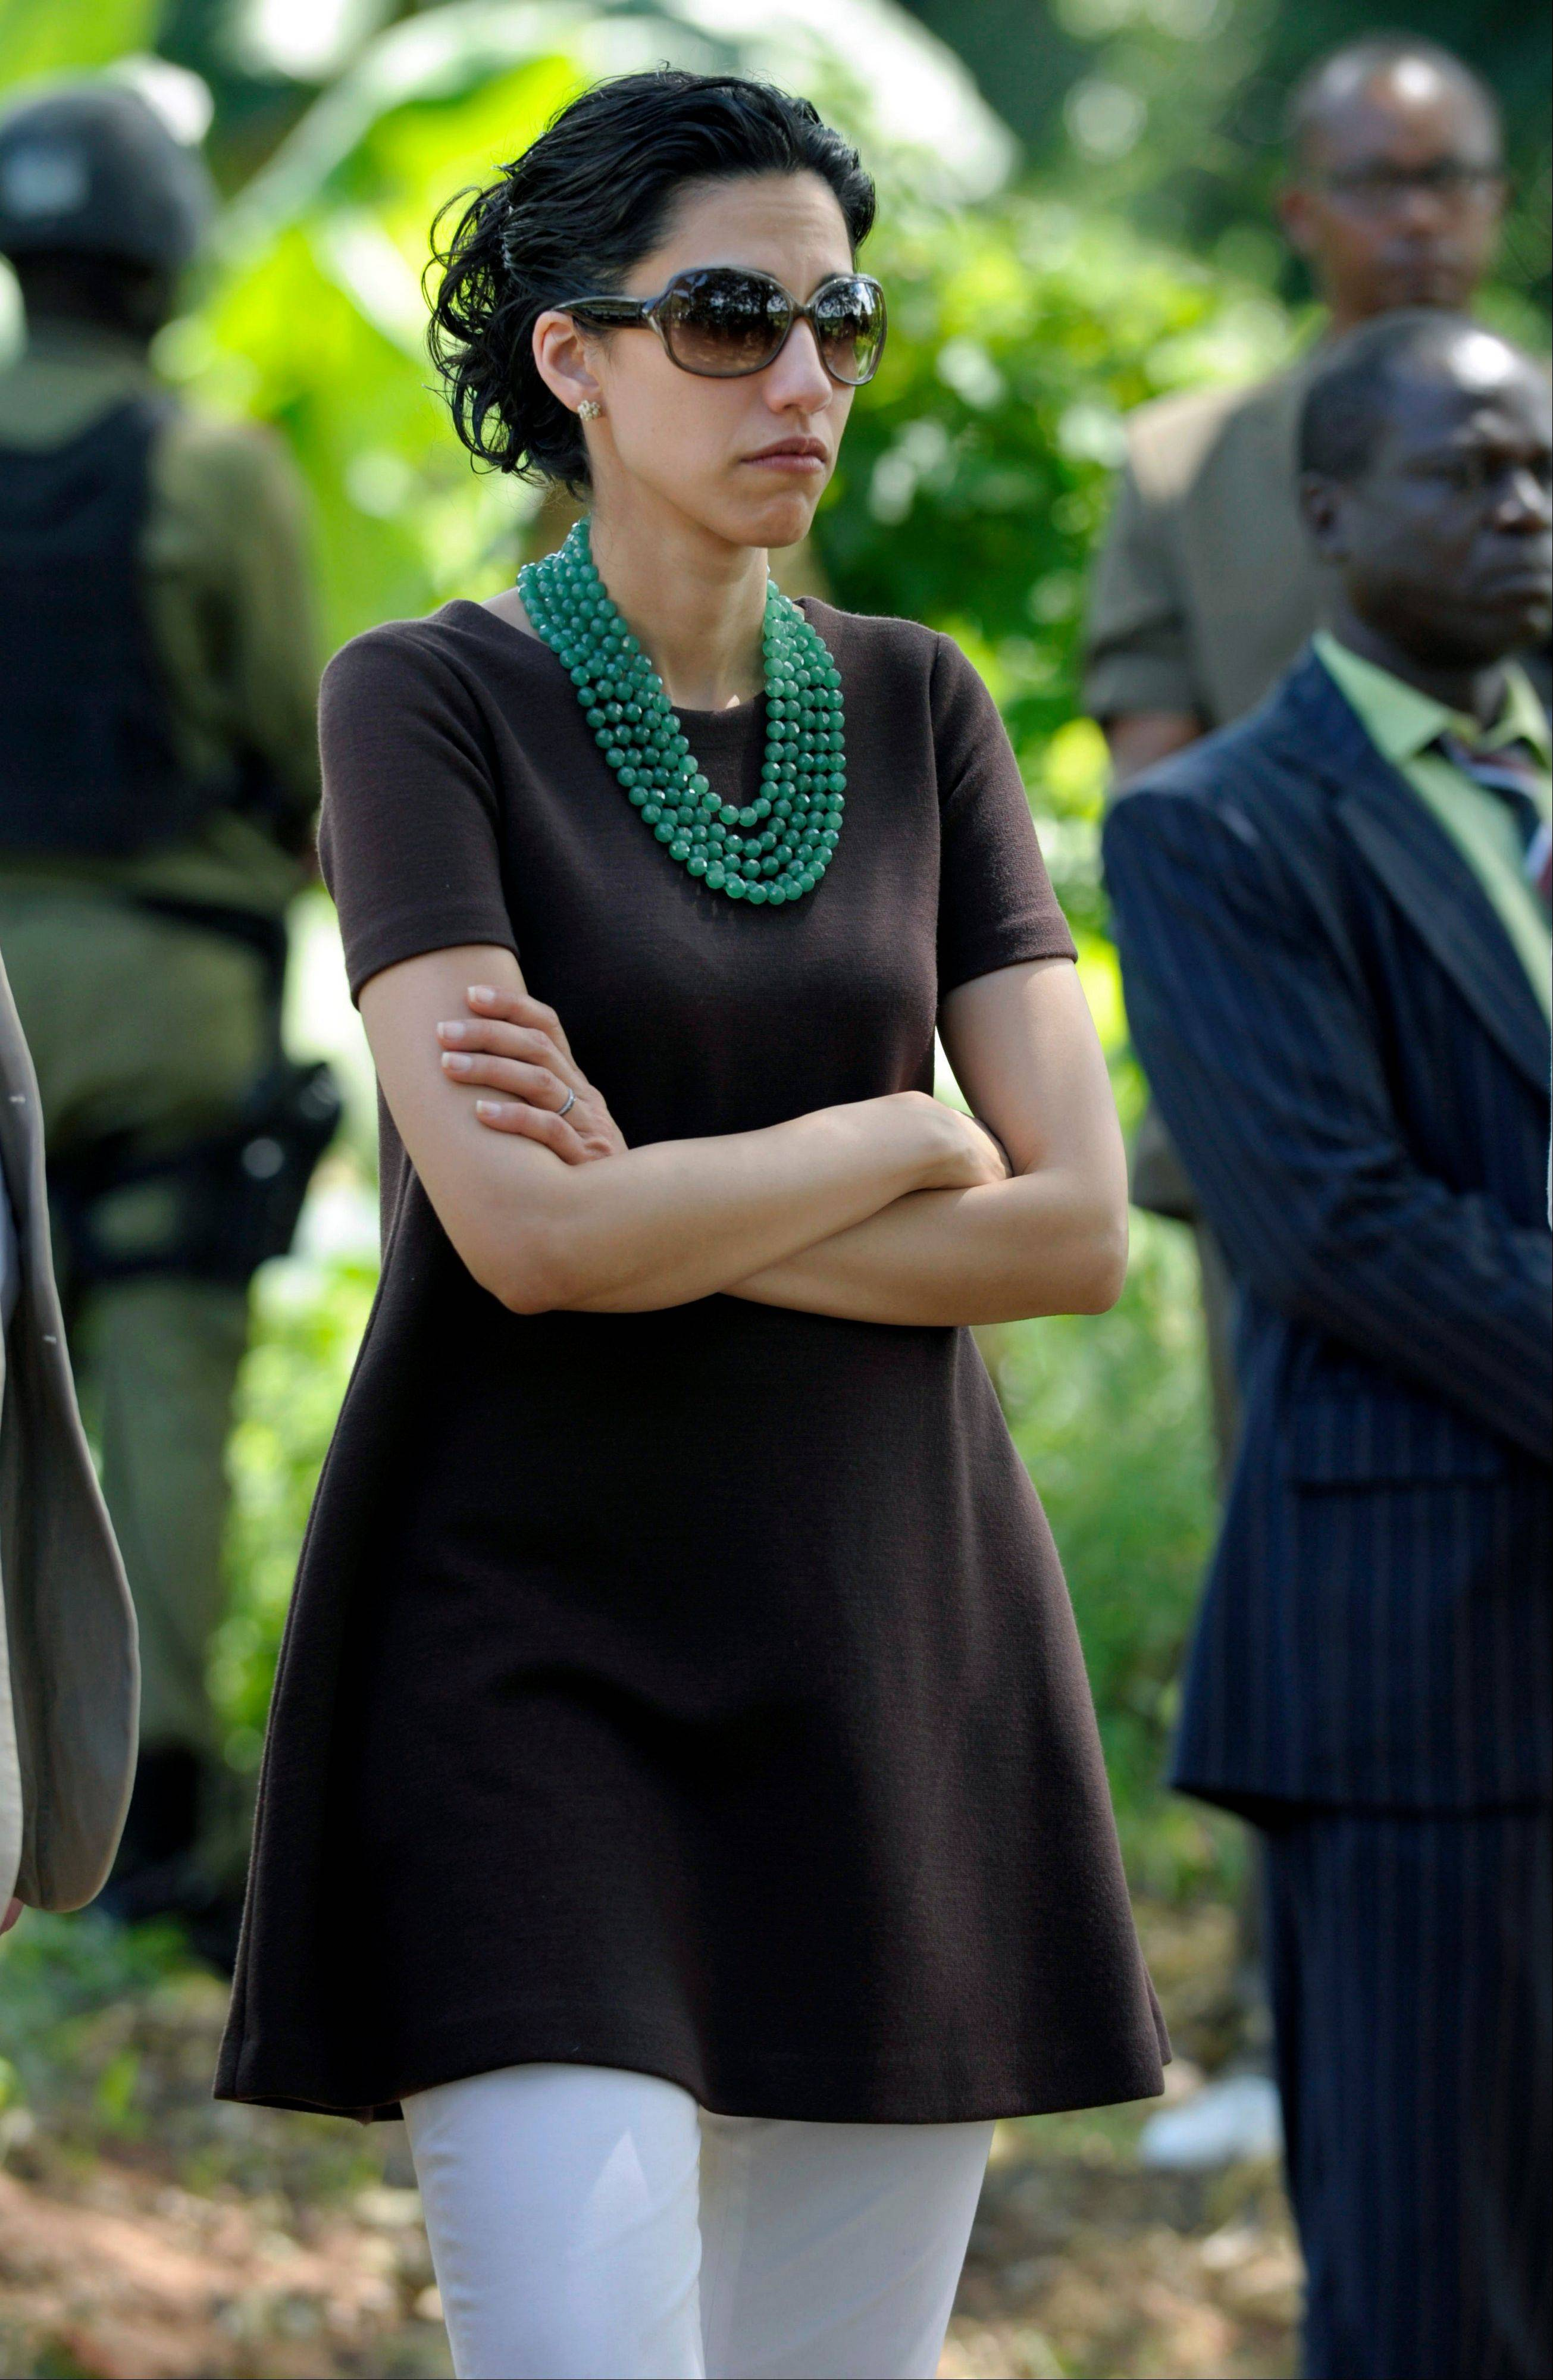 Huma Abedin, an aide to then Secretary of State Hillary Rodham Clinton, attends an event with farmers in Mlandizi, Tanzania, as controversy swirled around Abedin�s husband, Anthony Weiner.